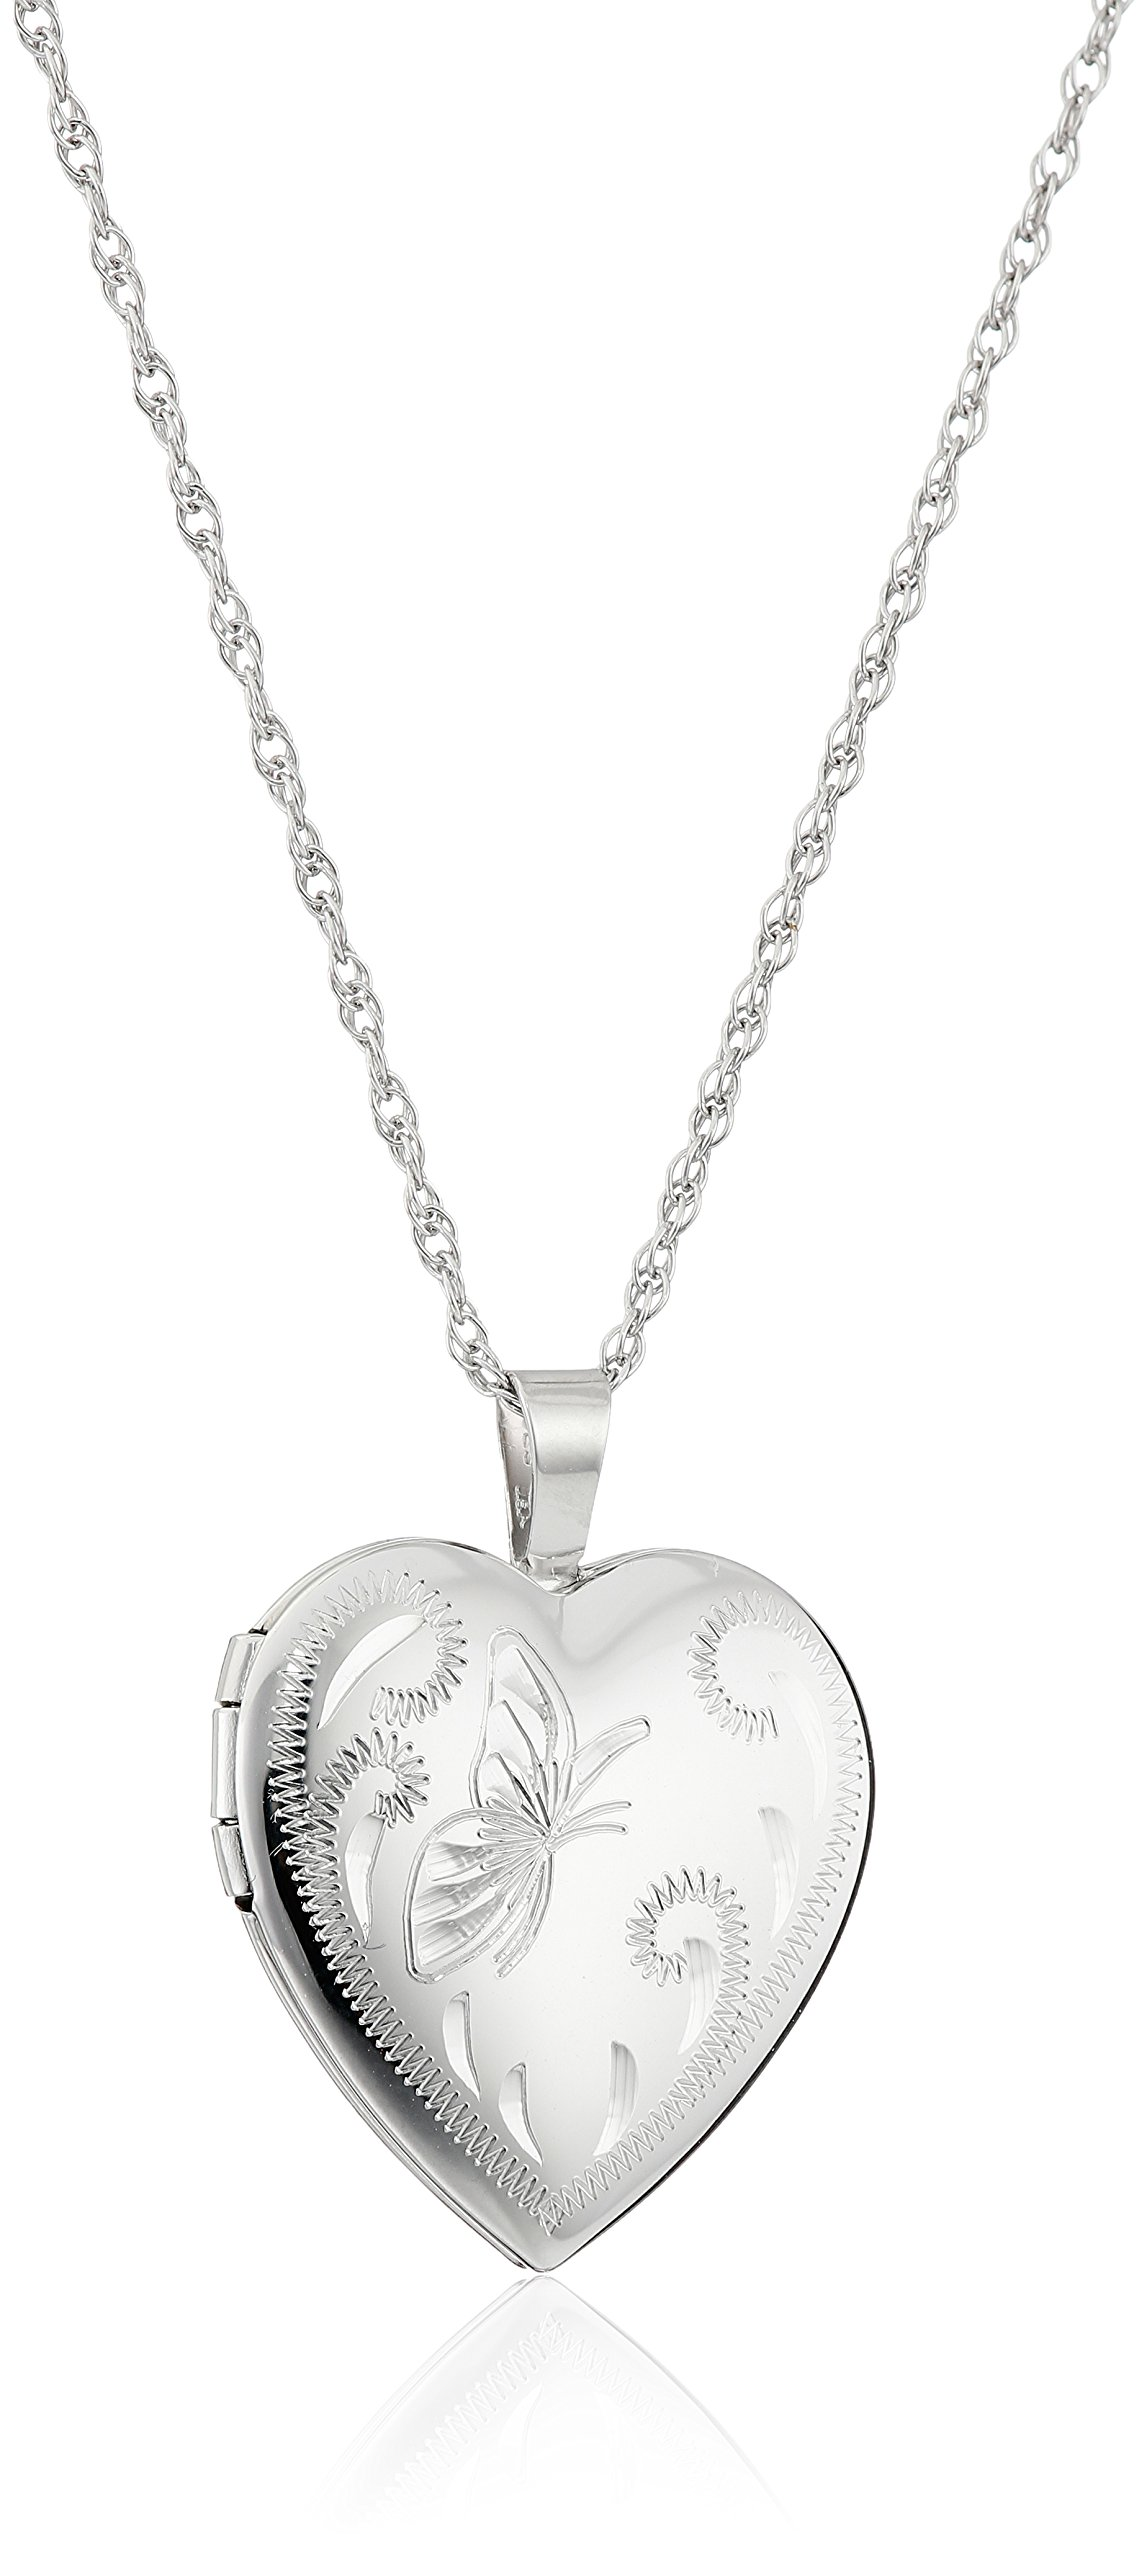 Sterling Silver Heart with Hand Engraved Butterfly Locket Necklace, 18'' by Amazon Collection (Image #1)